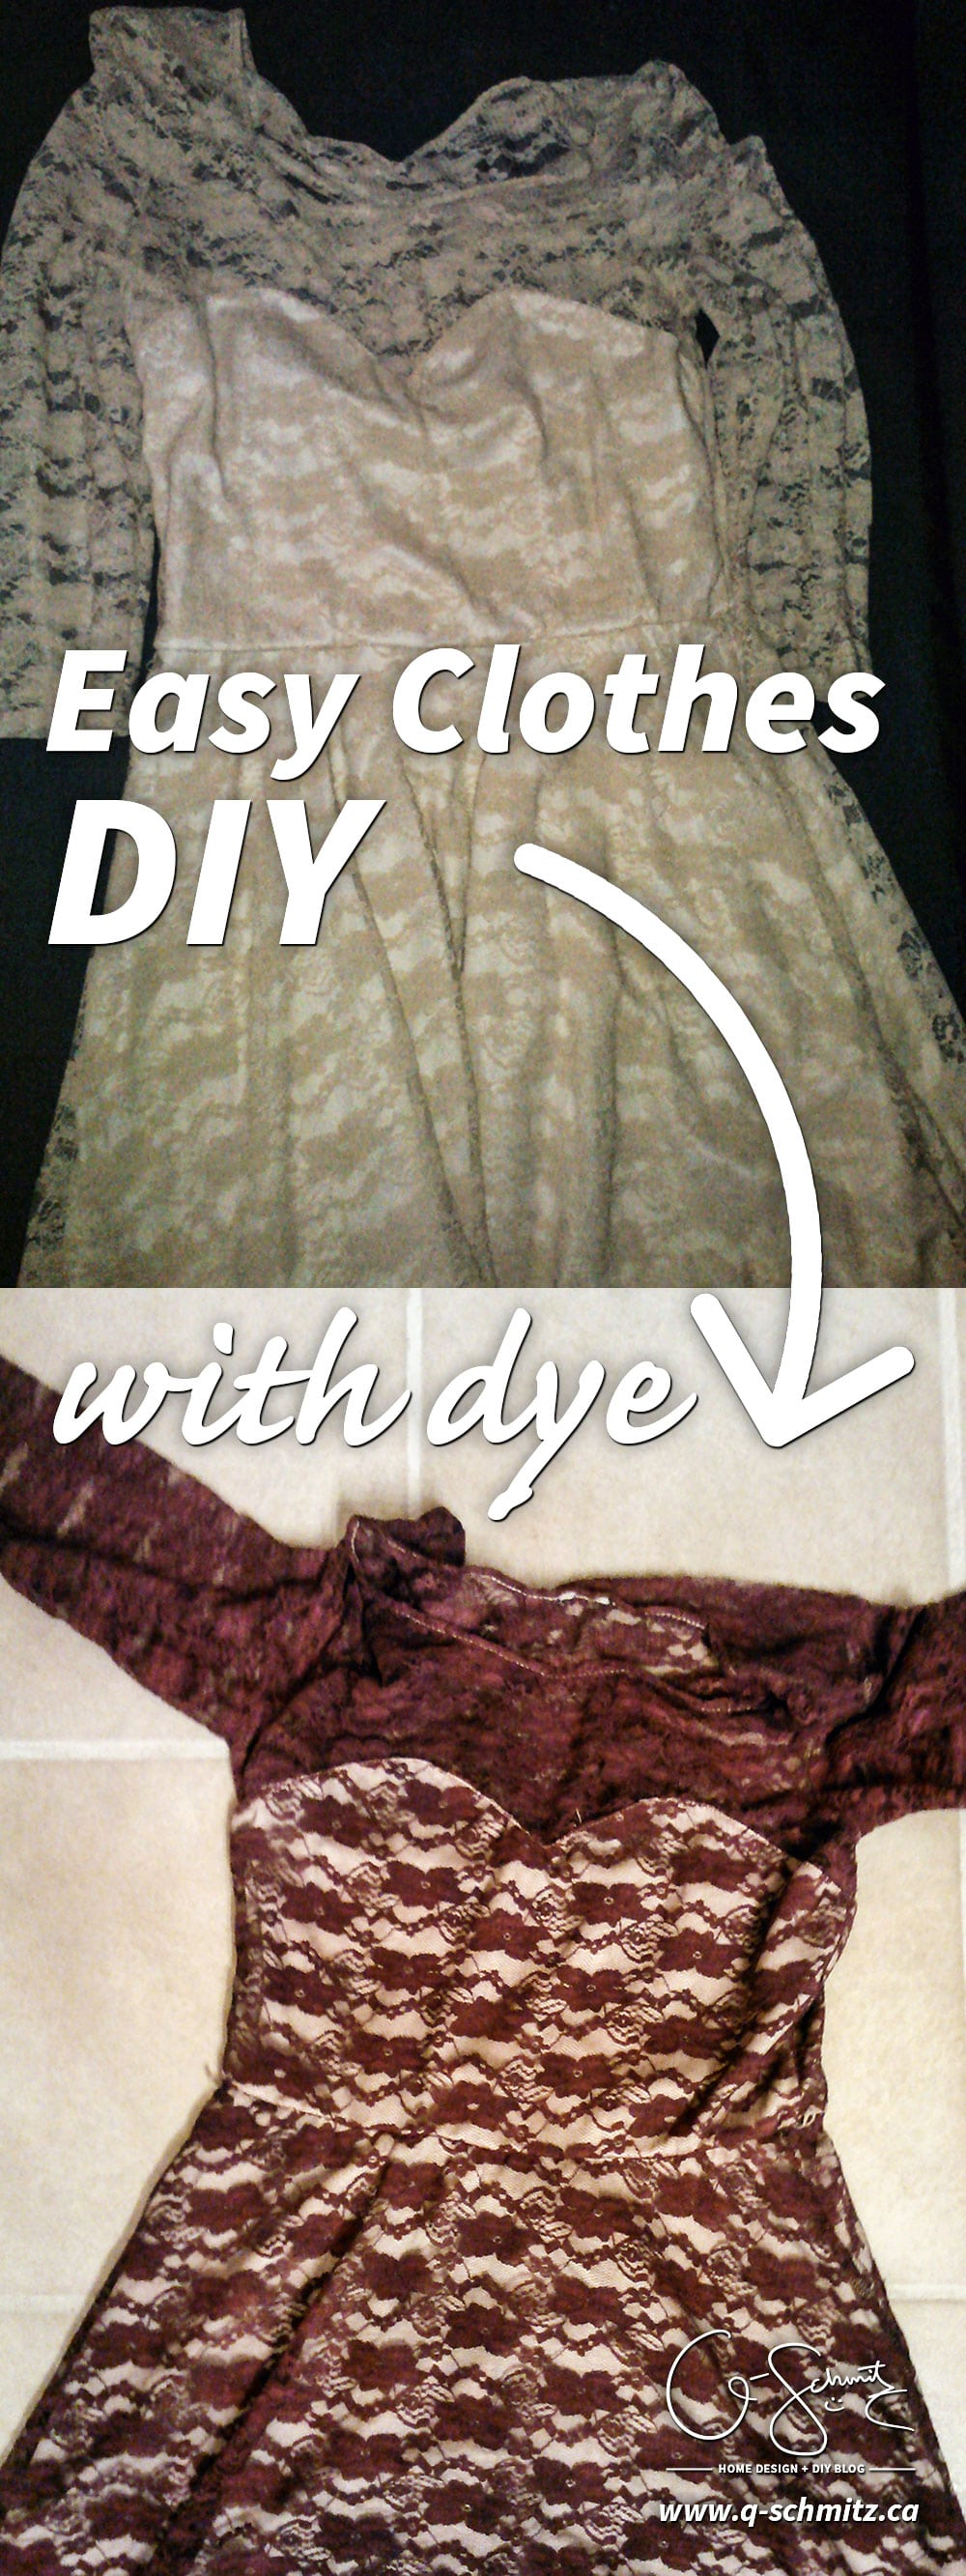 Have you ever used fabric dye before? Trust me - it's super easy! Check out these easy clothing DIY projects, that can be done for less than 10$!